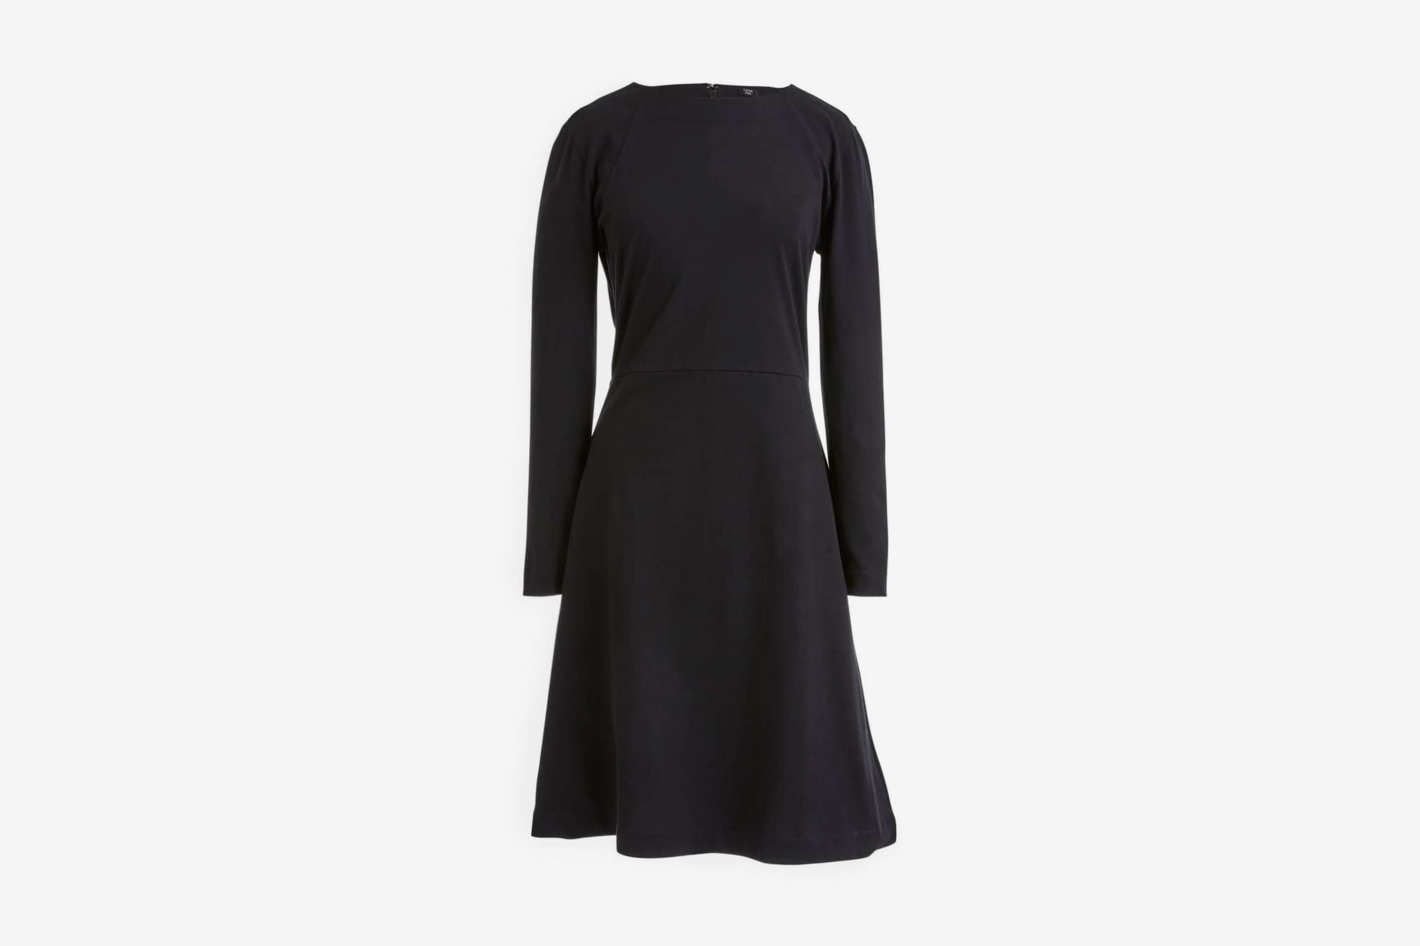 J.Crew 365 Knit Fit & Flare Dress